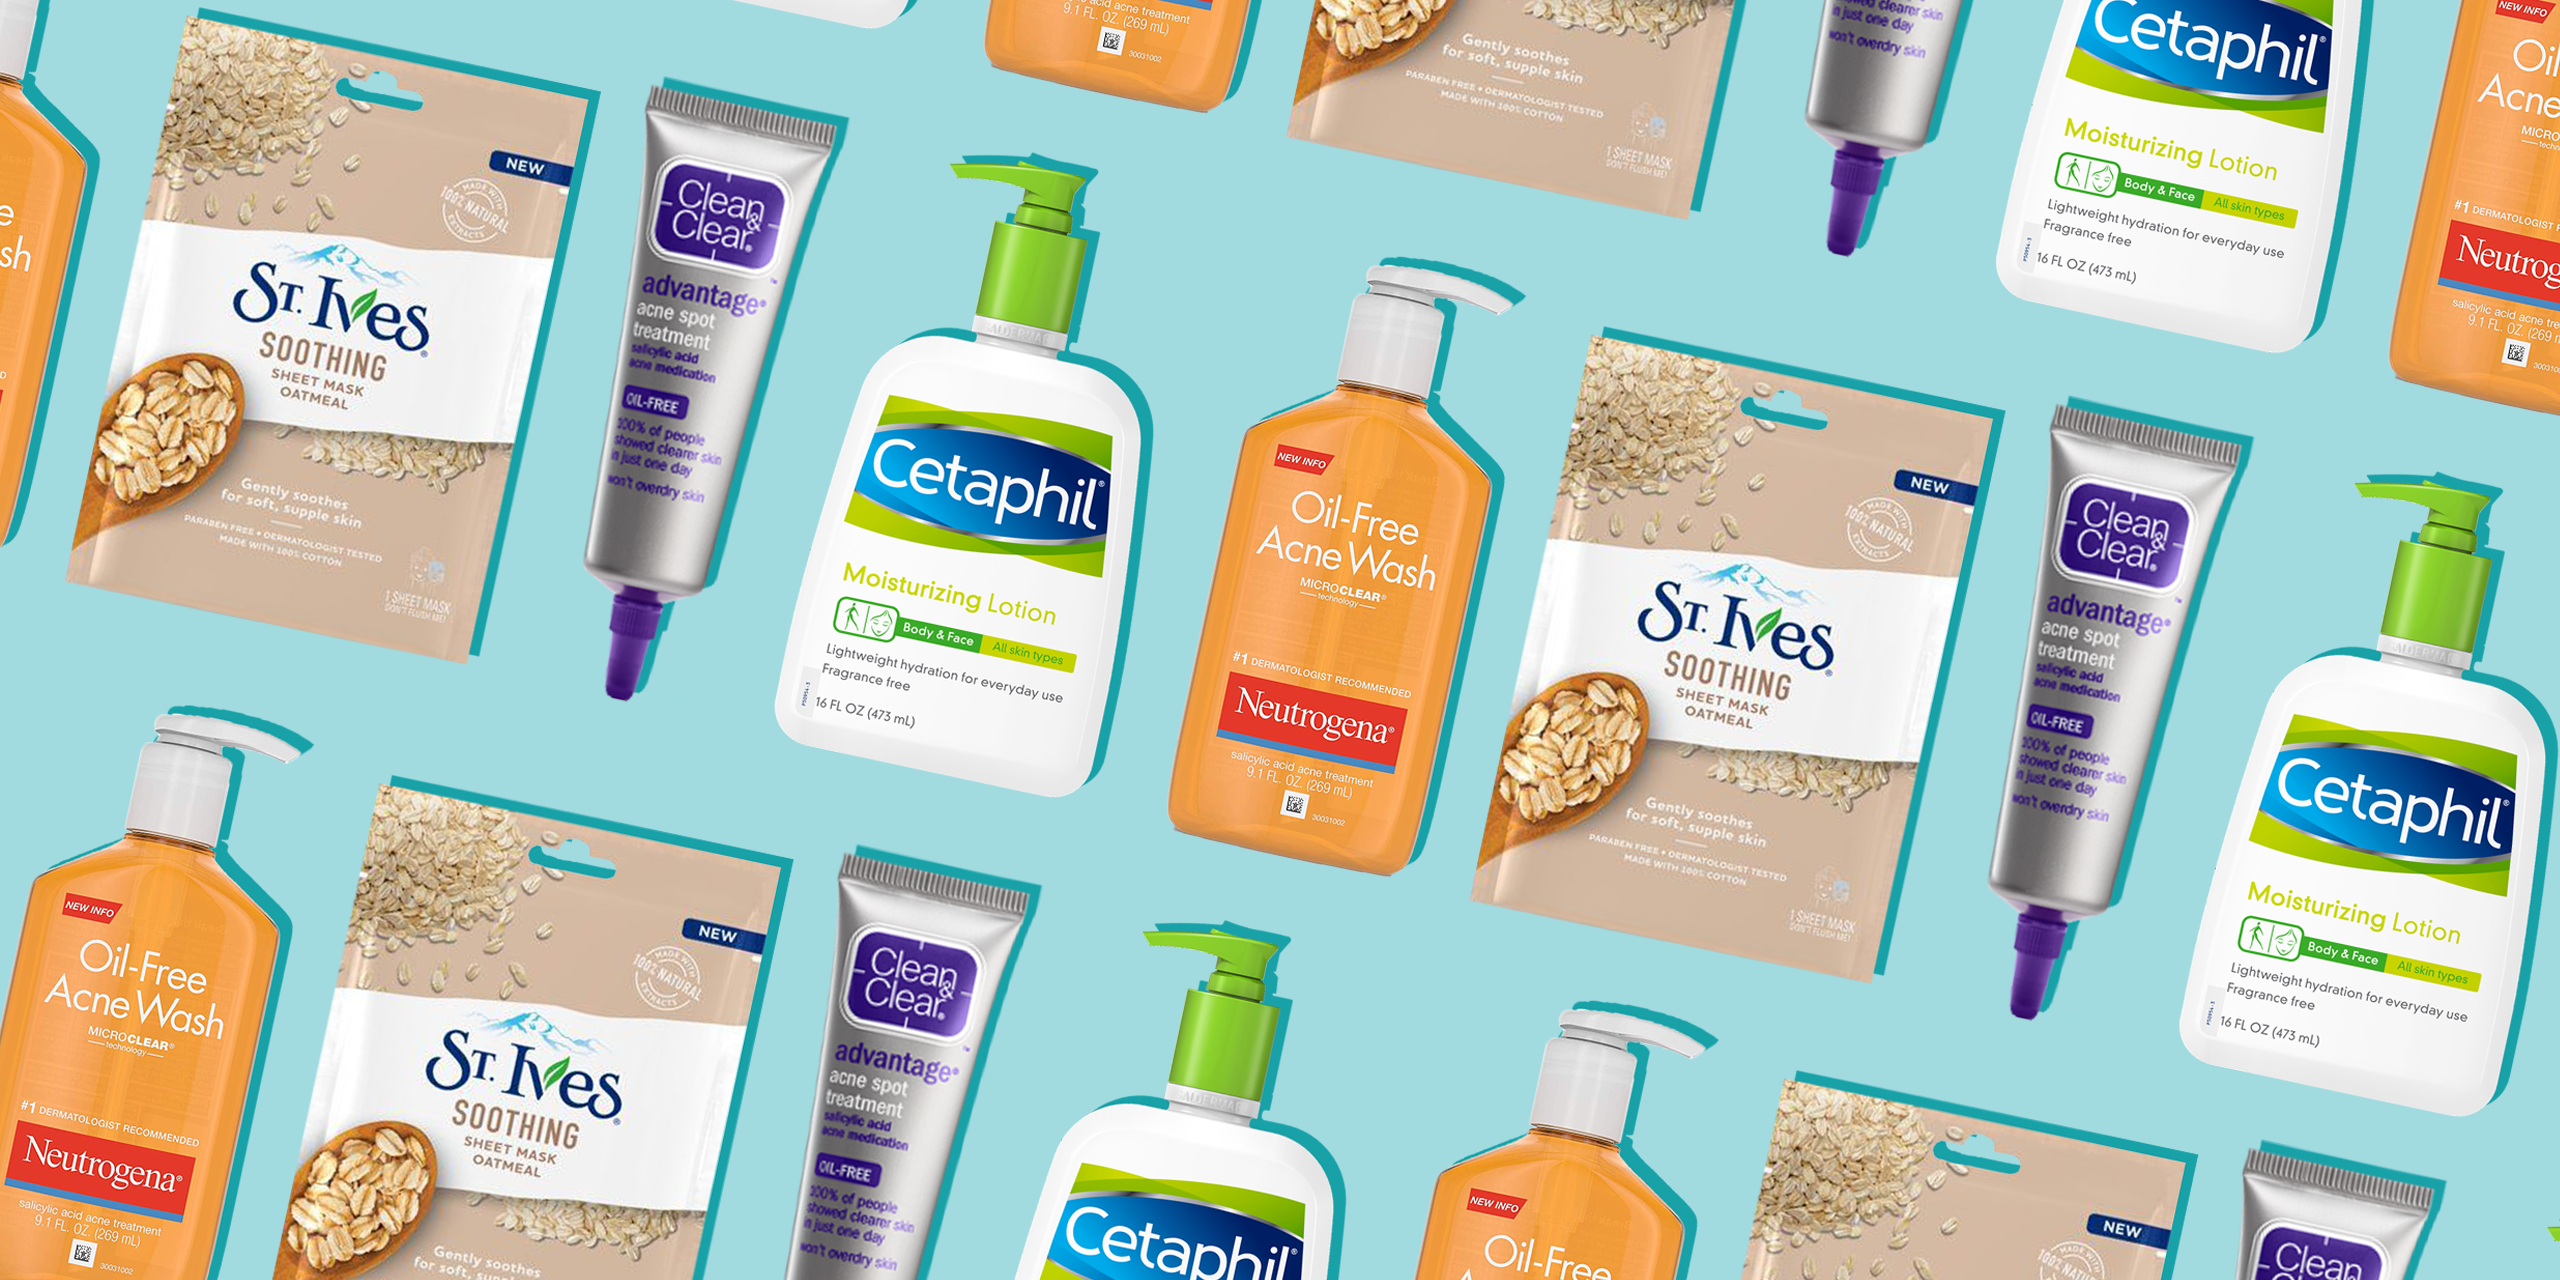 13 Best Drugstore Acne Products 2019 According To